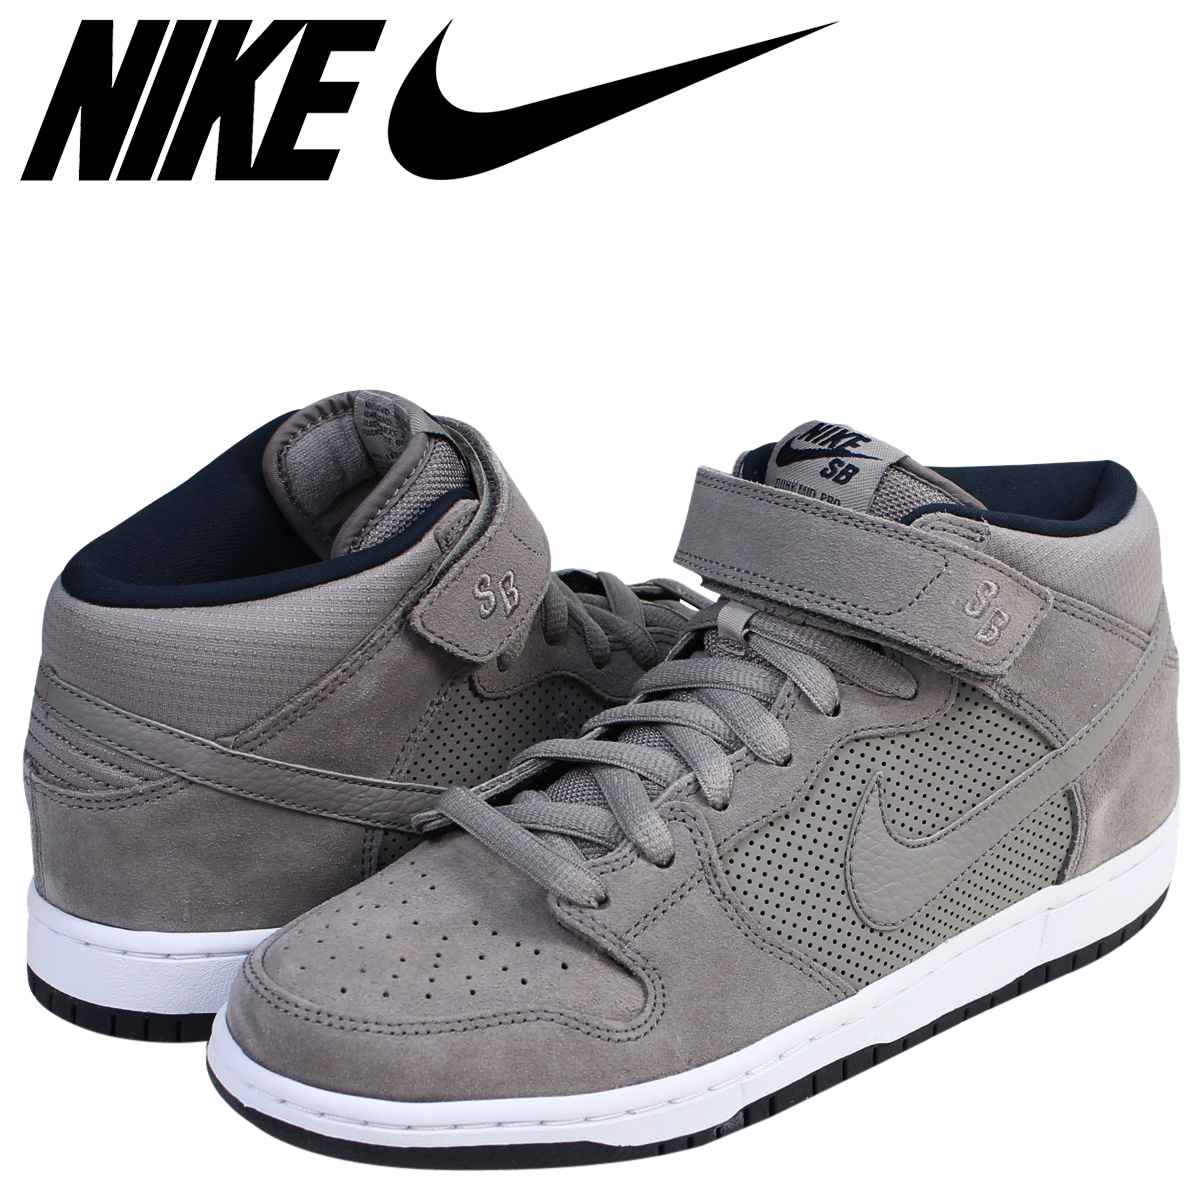 low priced 287bc 5bb29 NIKE Nike SB dunk sneakers DUNK MID PRO men 314,383-050 shoes gray